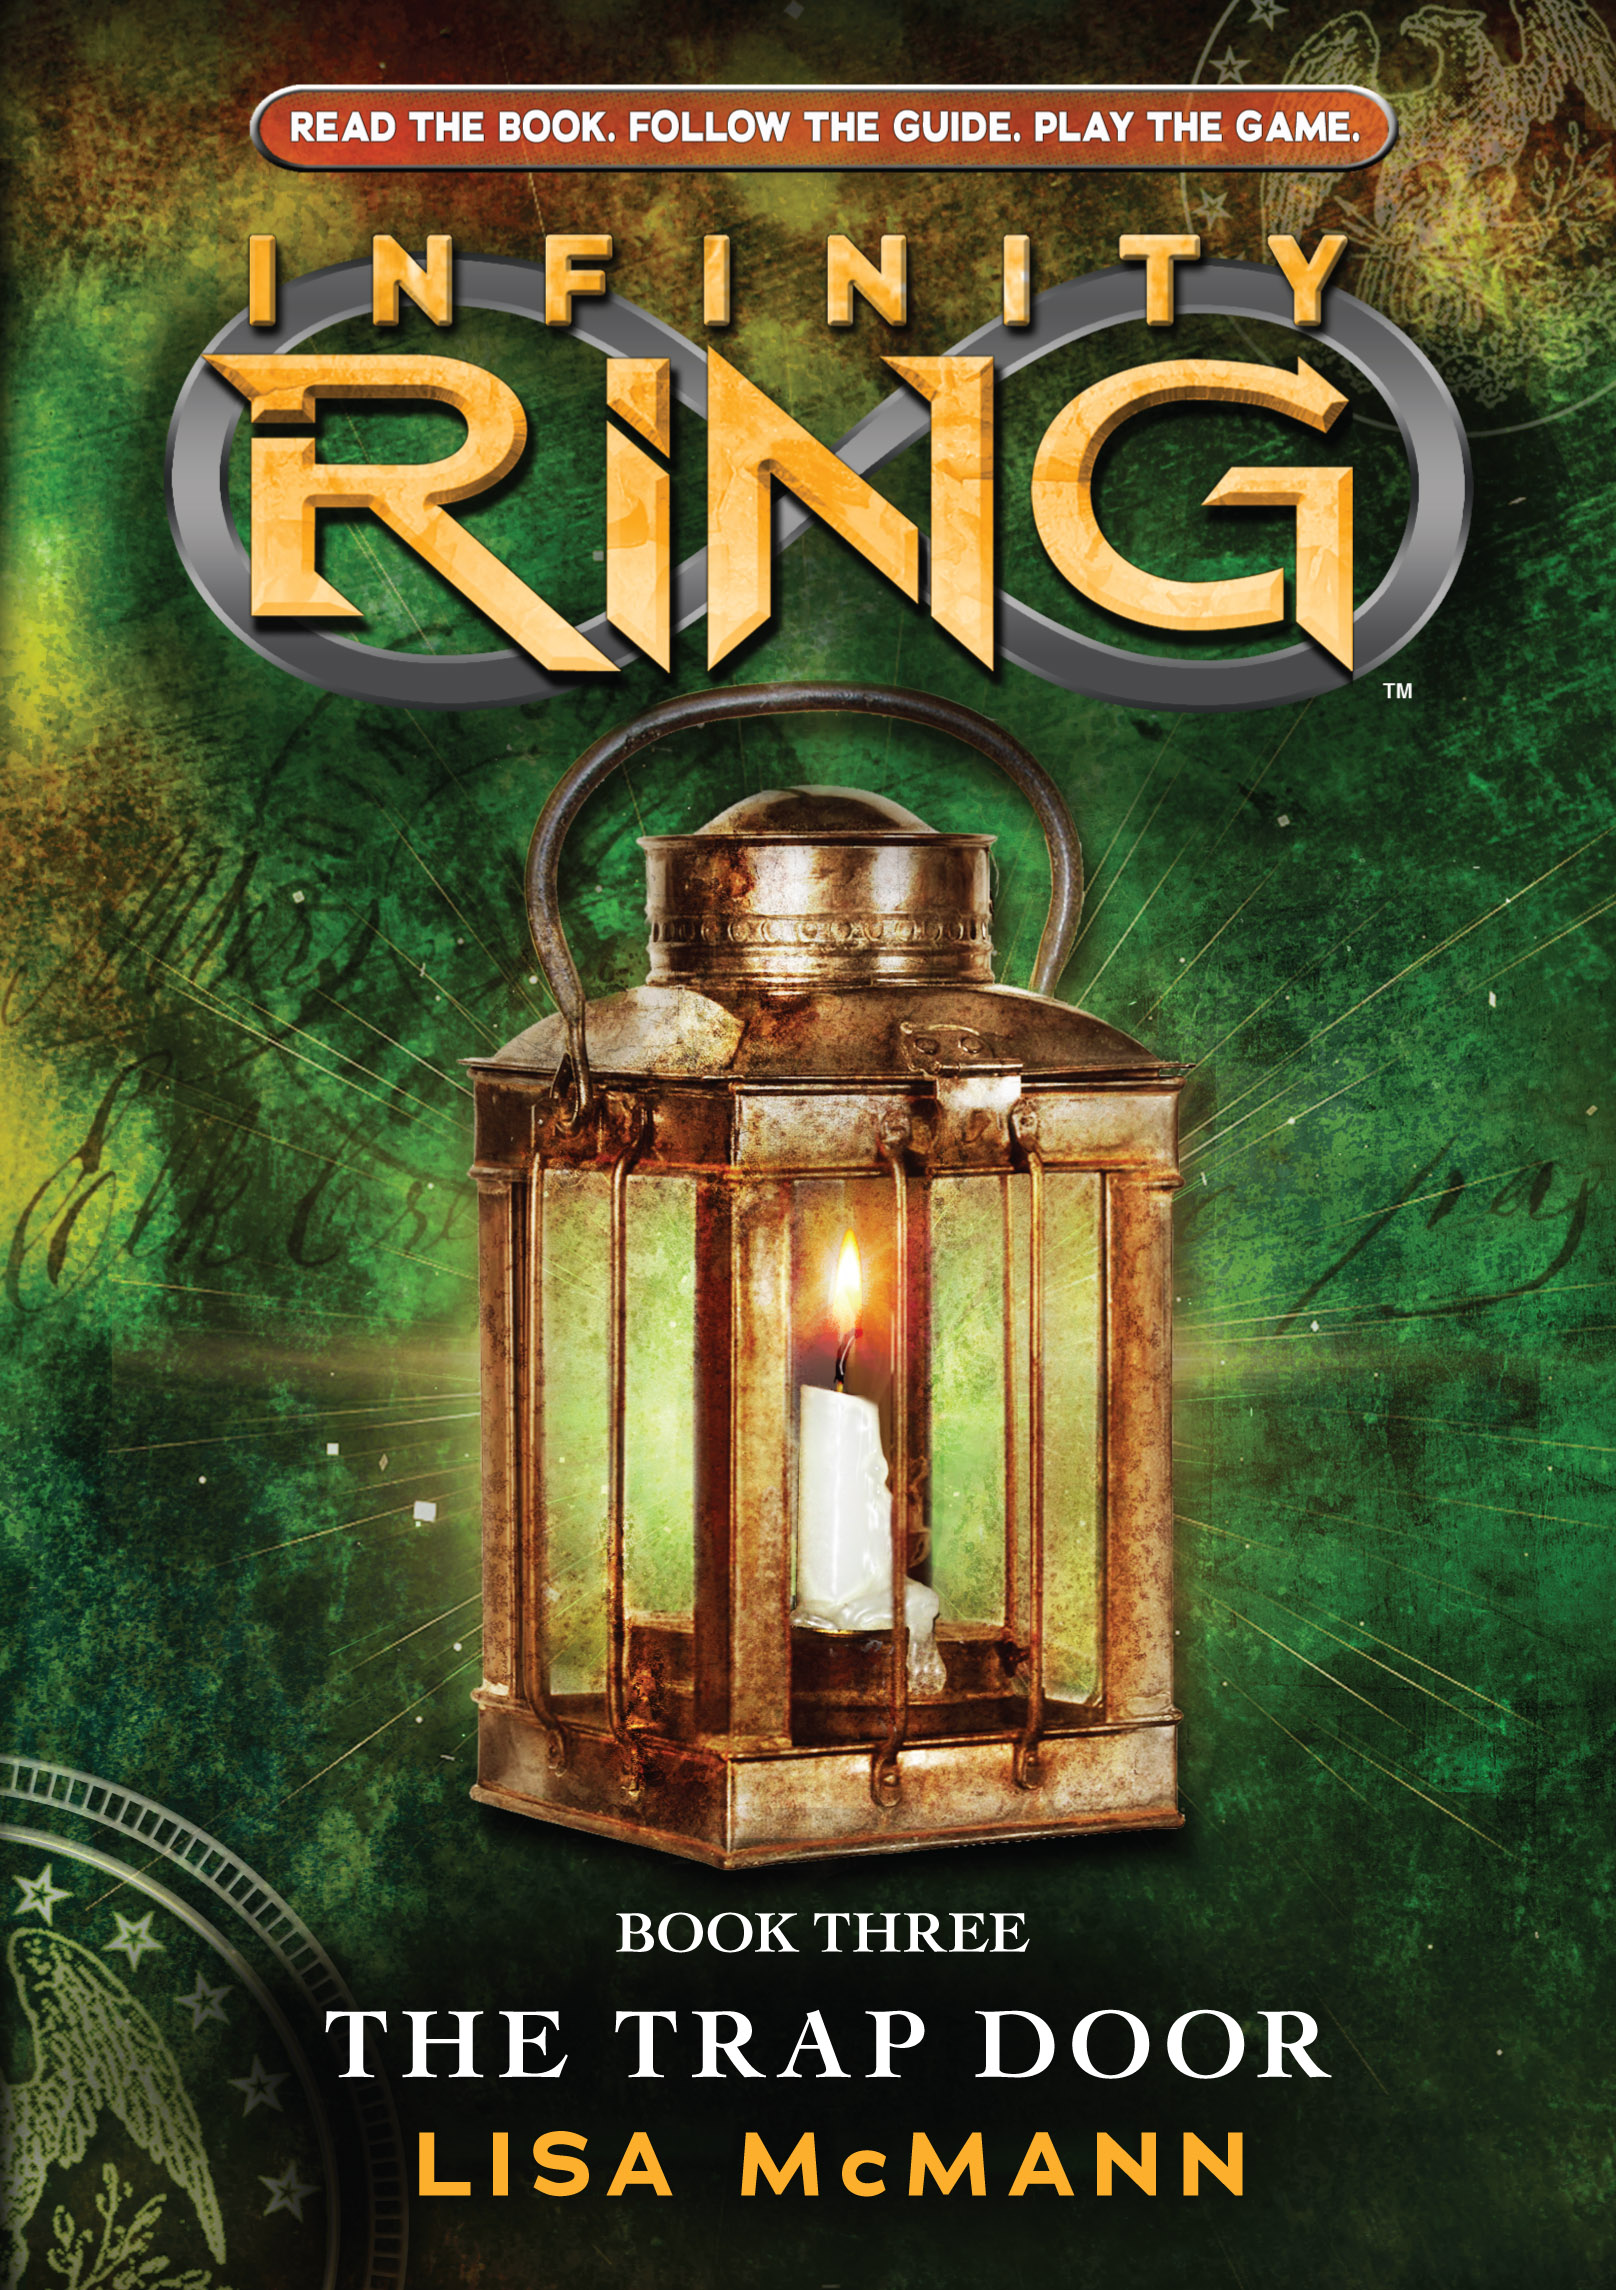 INFINITY RING BOOK 3